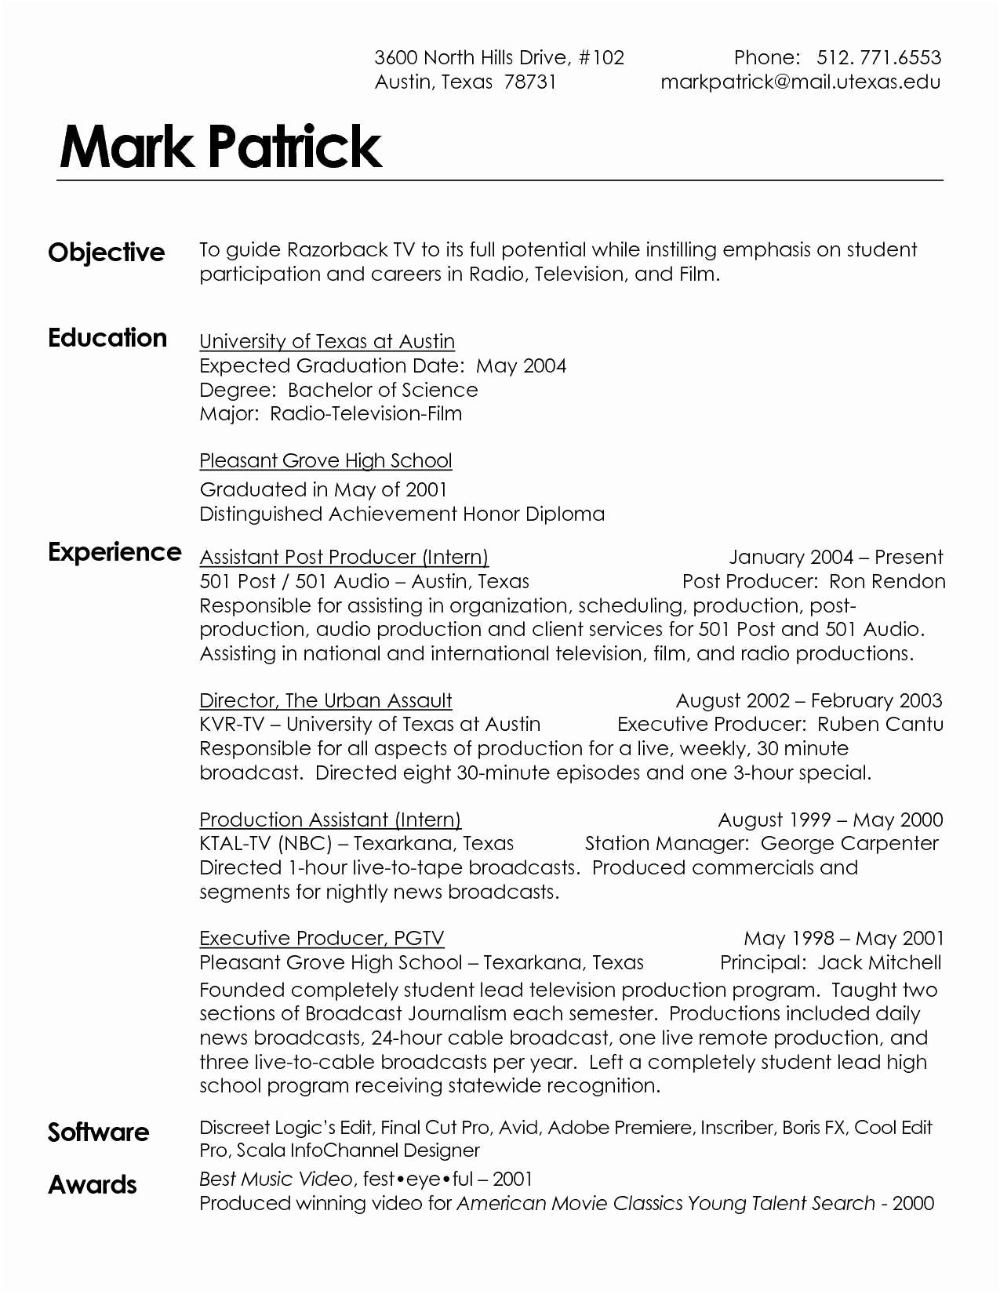 Beaufiful Executive Producer Agreement Template Images Producer Regarding Radio Syndication Agreem Resume Examples Student Resume Template Good Resume Examples